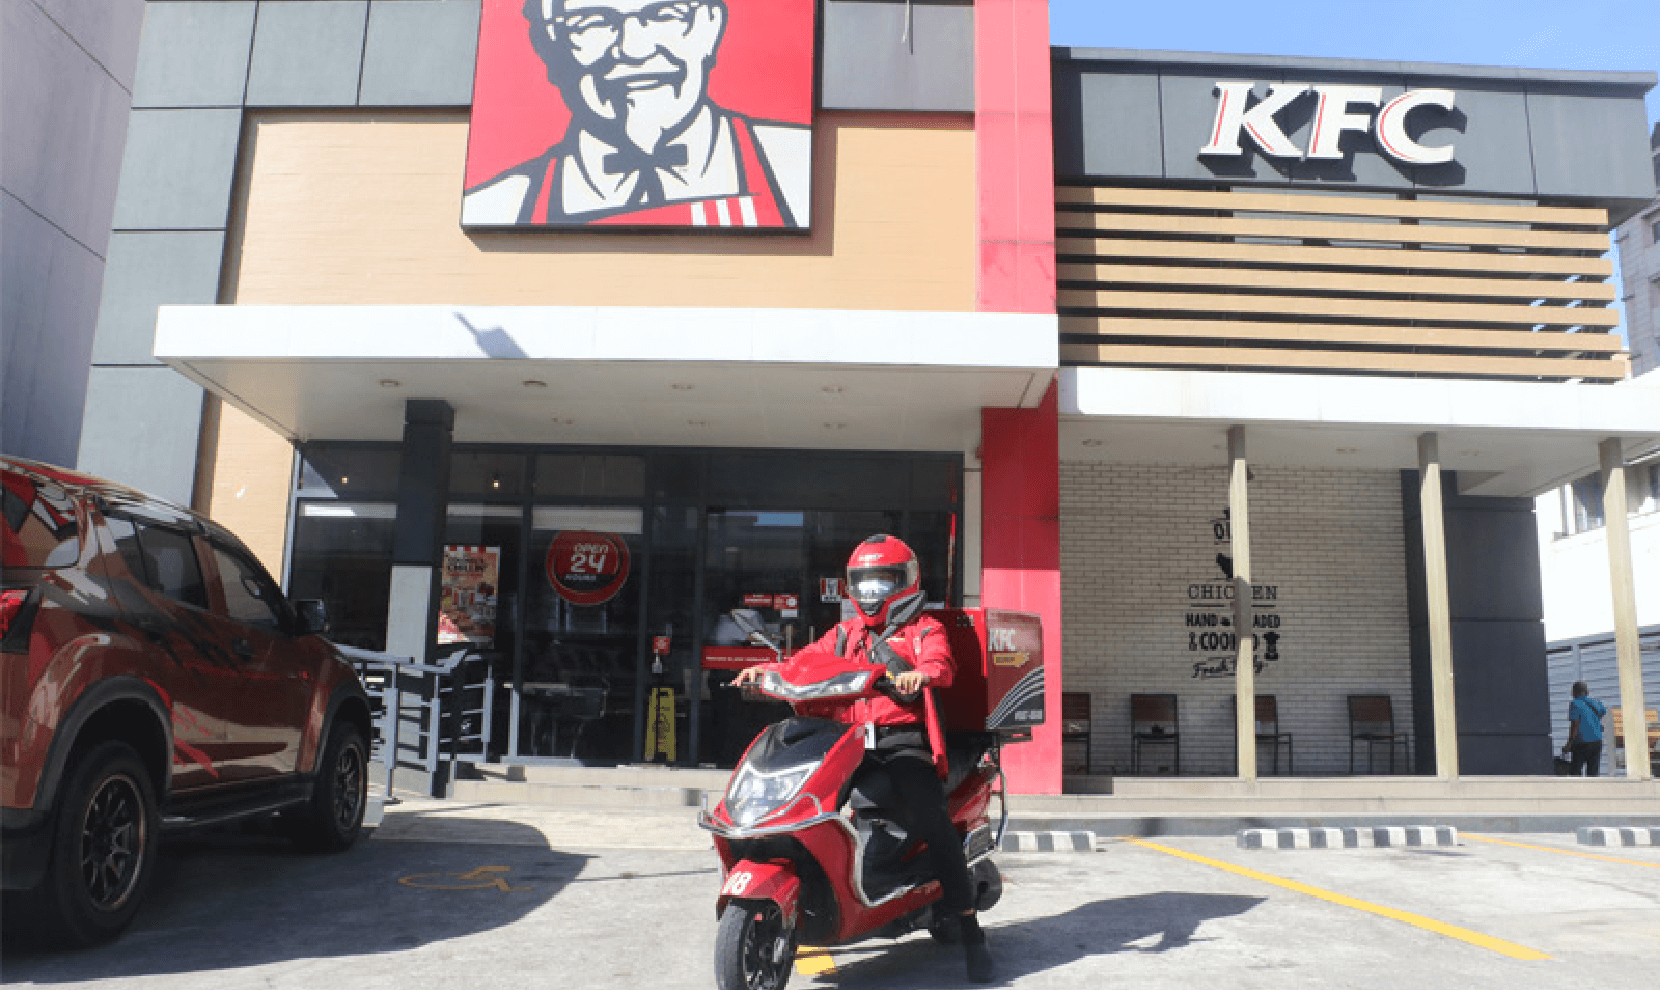 kfcs-e-bike-to-pioneer-eco-friendly-delivery-service-in-the-philippines